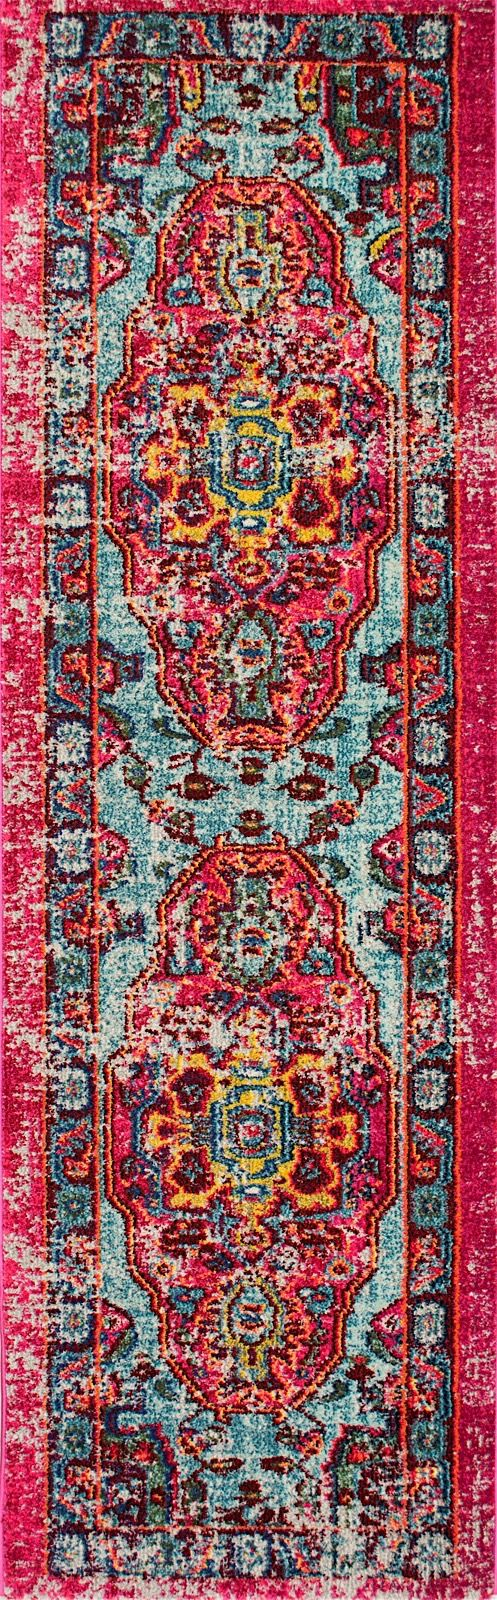 nuloom vintage corbett traditional area rug collection